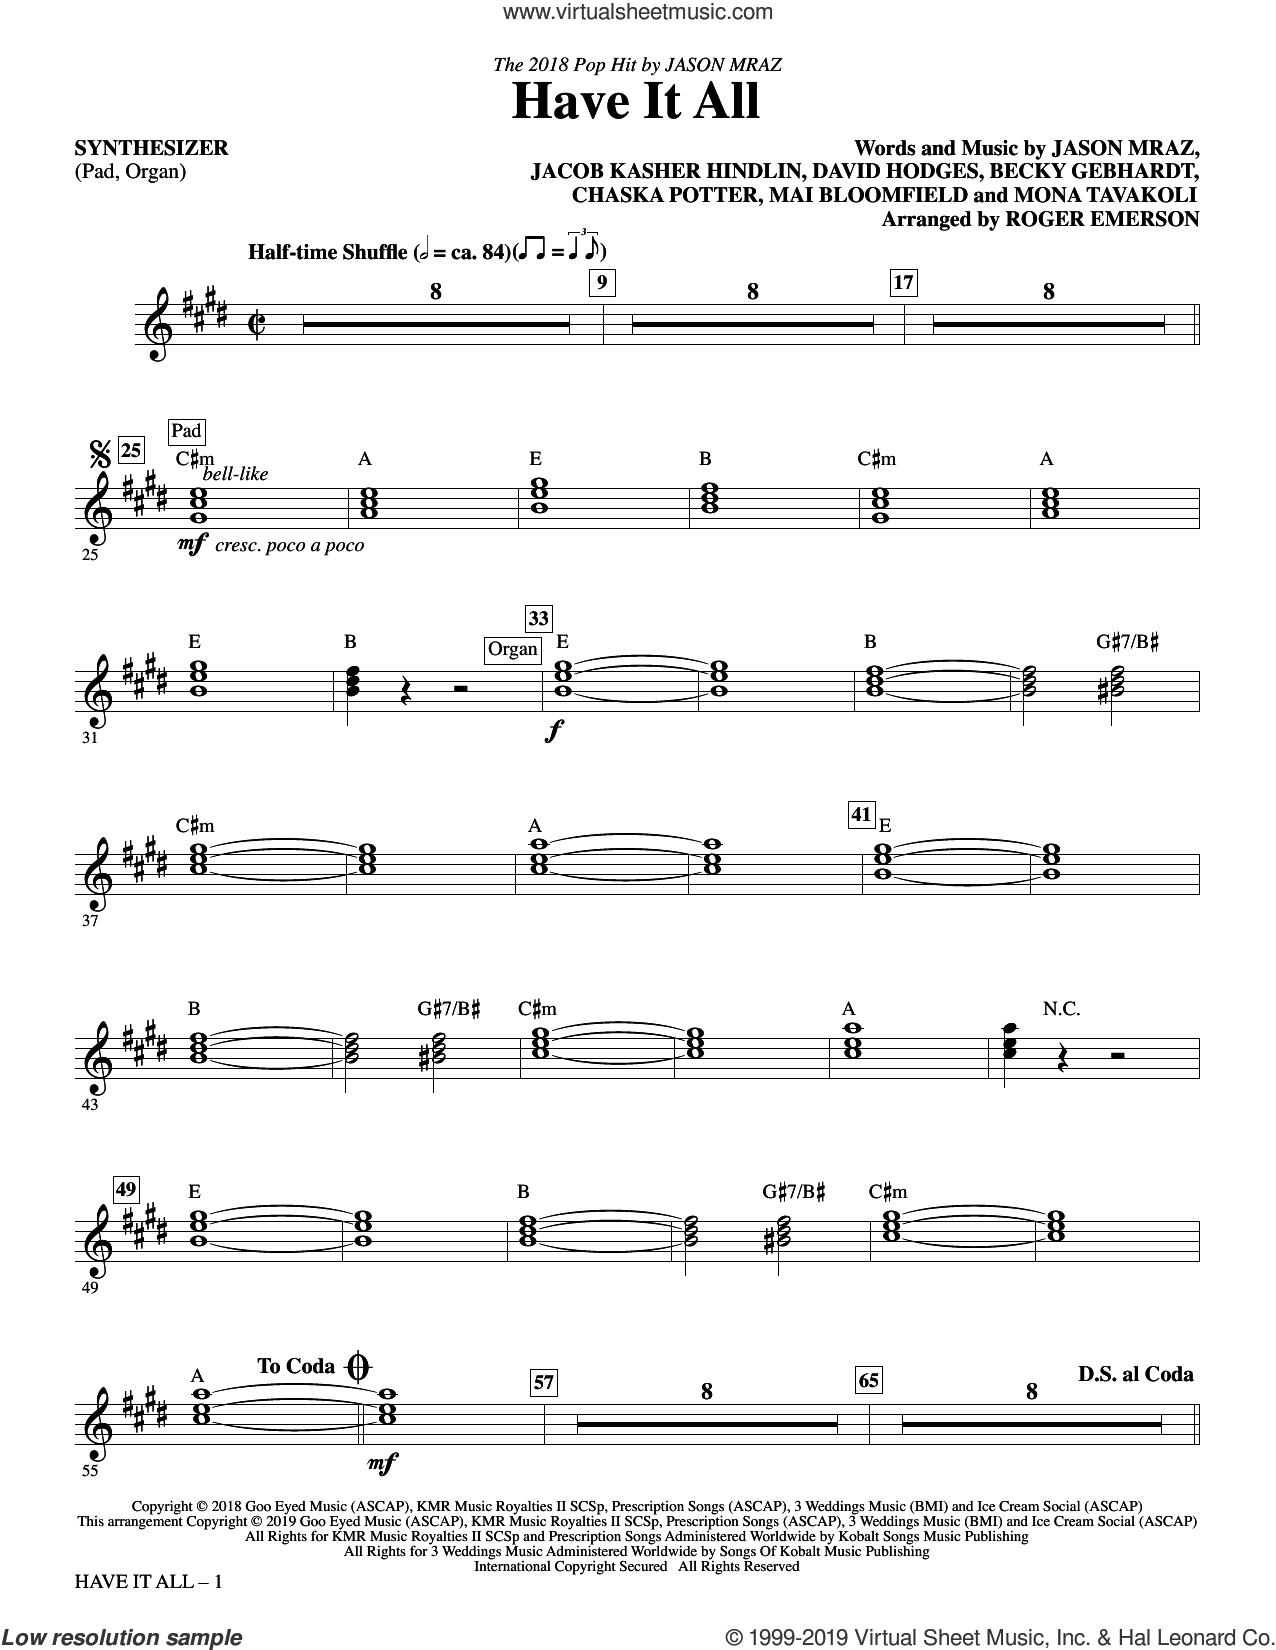 Have It All (arr. Roger Emerson) (complete set of parts) sheet music for orchestra/band by Roger Emerson, Becky Gebhardt, Chaska Potter, David Hodges, Jacob Kasher Hindlin, Jason Mraz, Mai Bloomfield and Mona Tavakoli, intermediate skill level